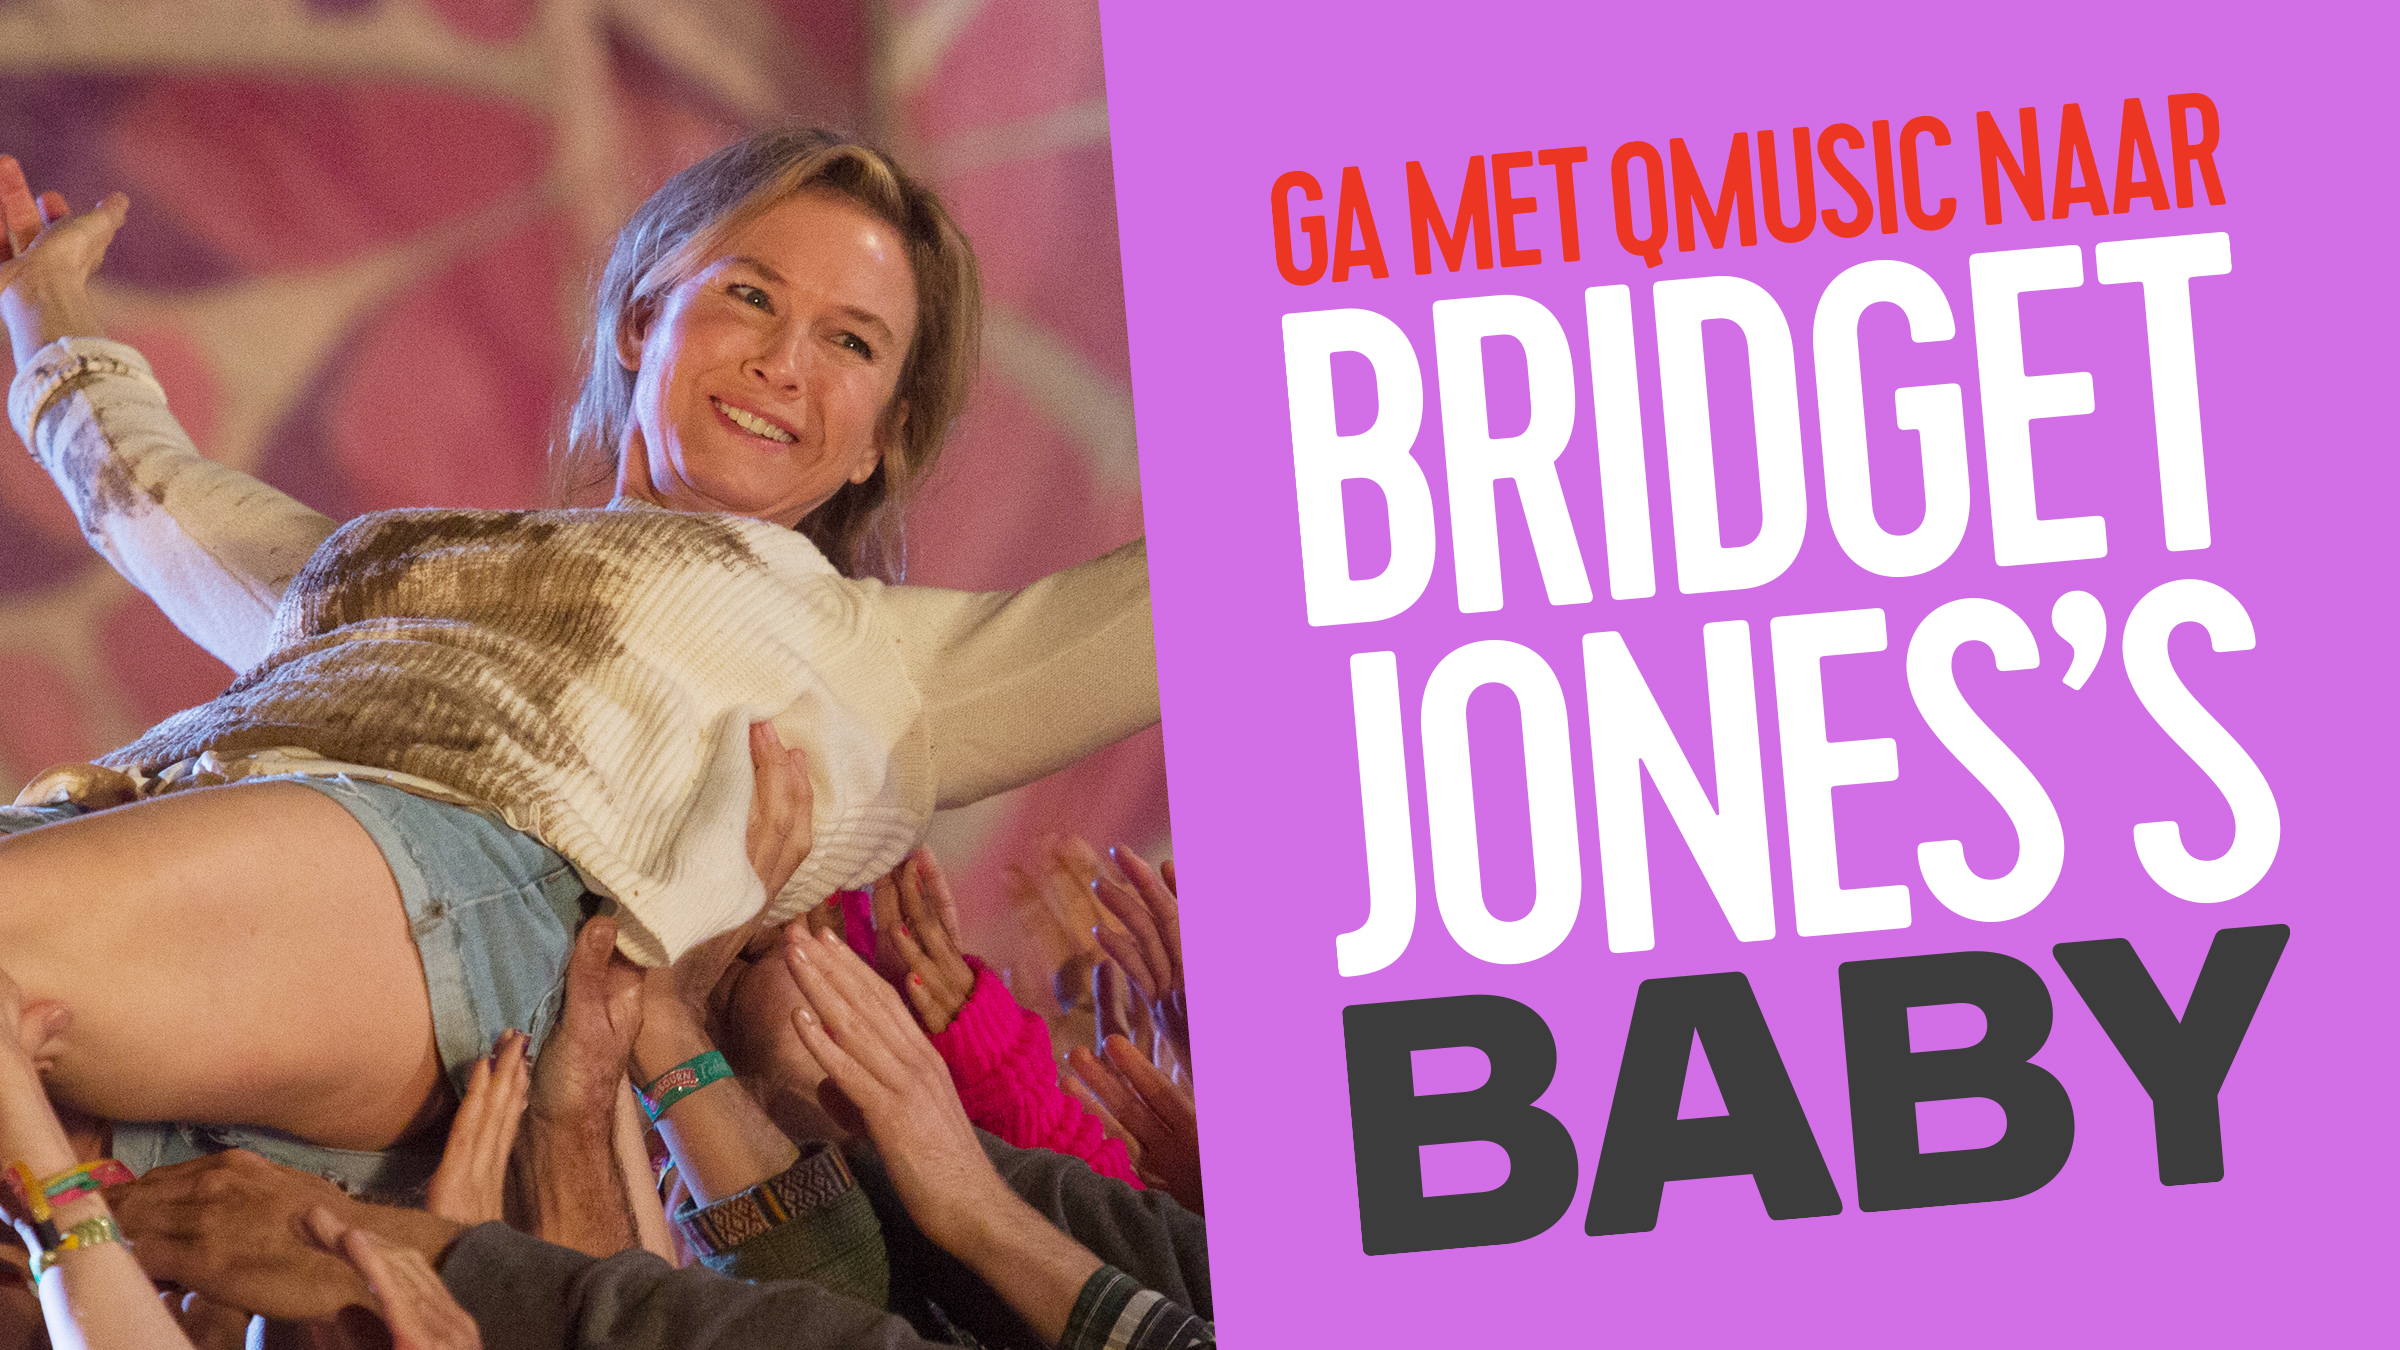 Qmusic teaser bridgetjonesbaby v2